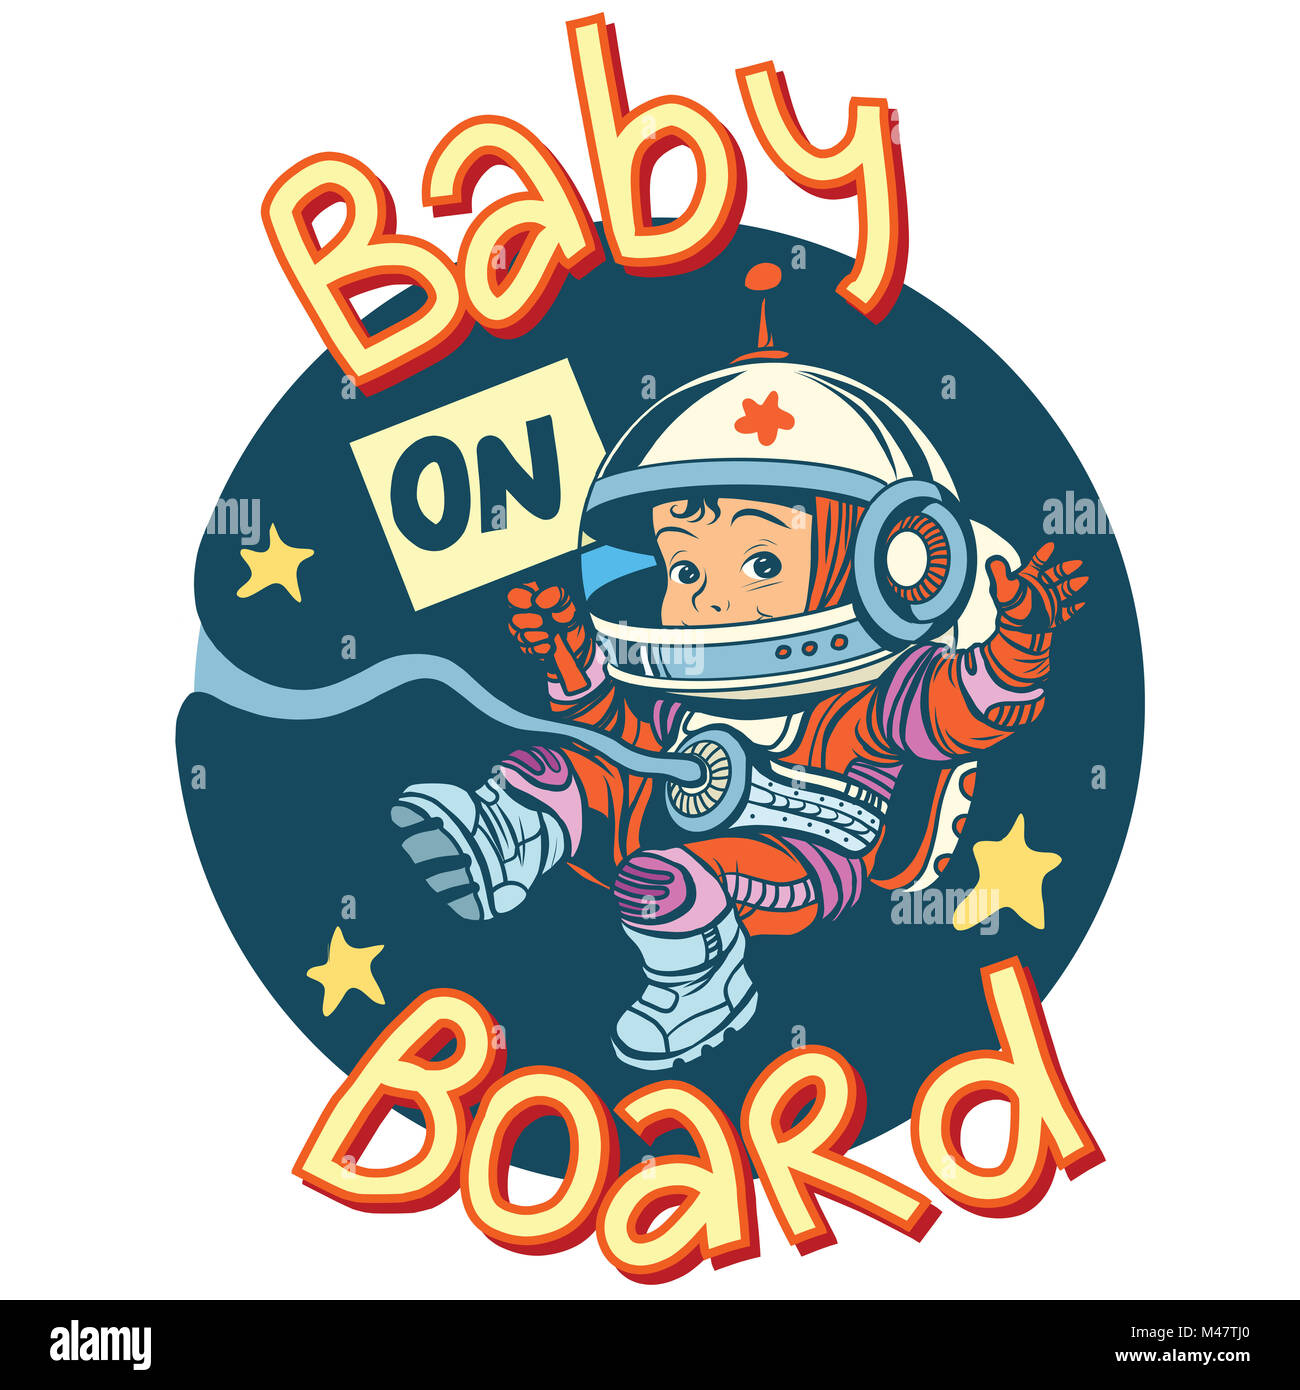 Baby on Board sign pregnancy cosmonaut - Stock Image